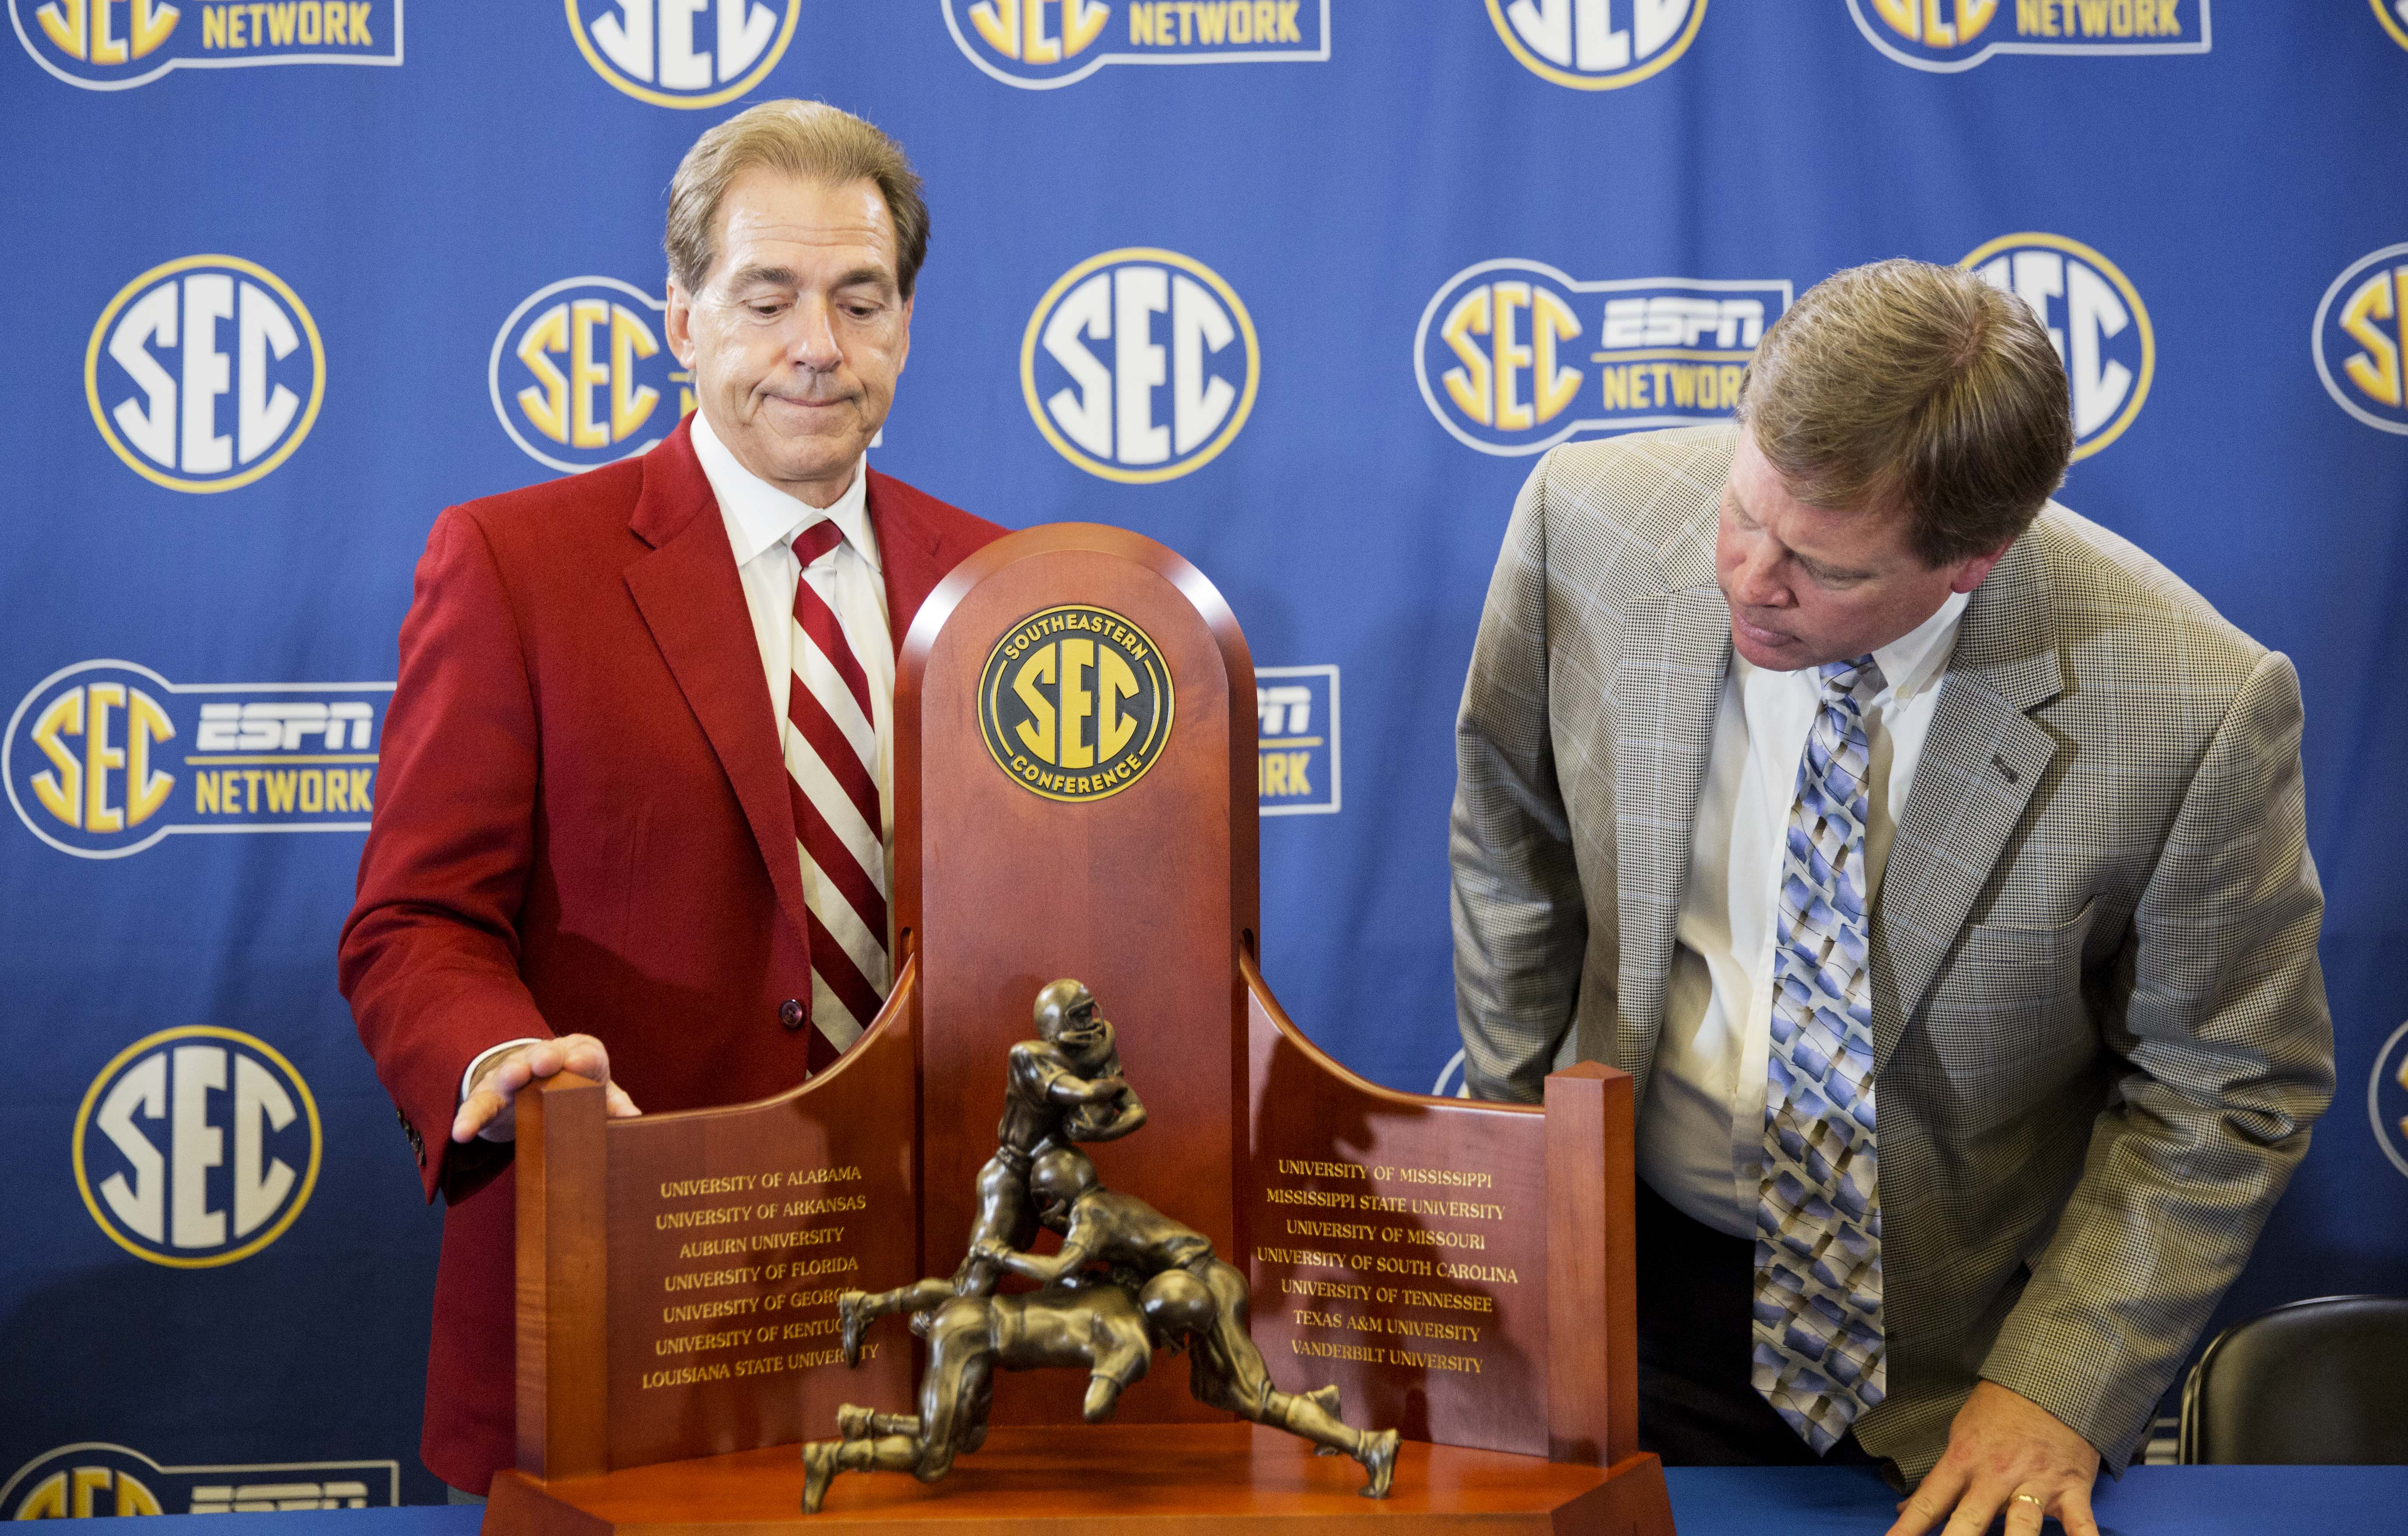 Alabama head coach Nick Saban, left, and Florida head coach Jim McElwain look down at the trophy during a press conference held ahead of Saturday's Southeastern Conference championship NCAA college football game, Friday, Dec. 4, 2015, in Atlanta. (AP Phot